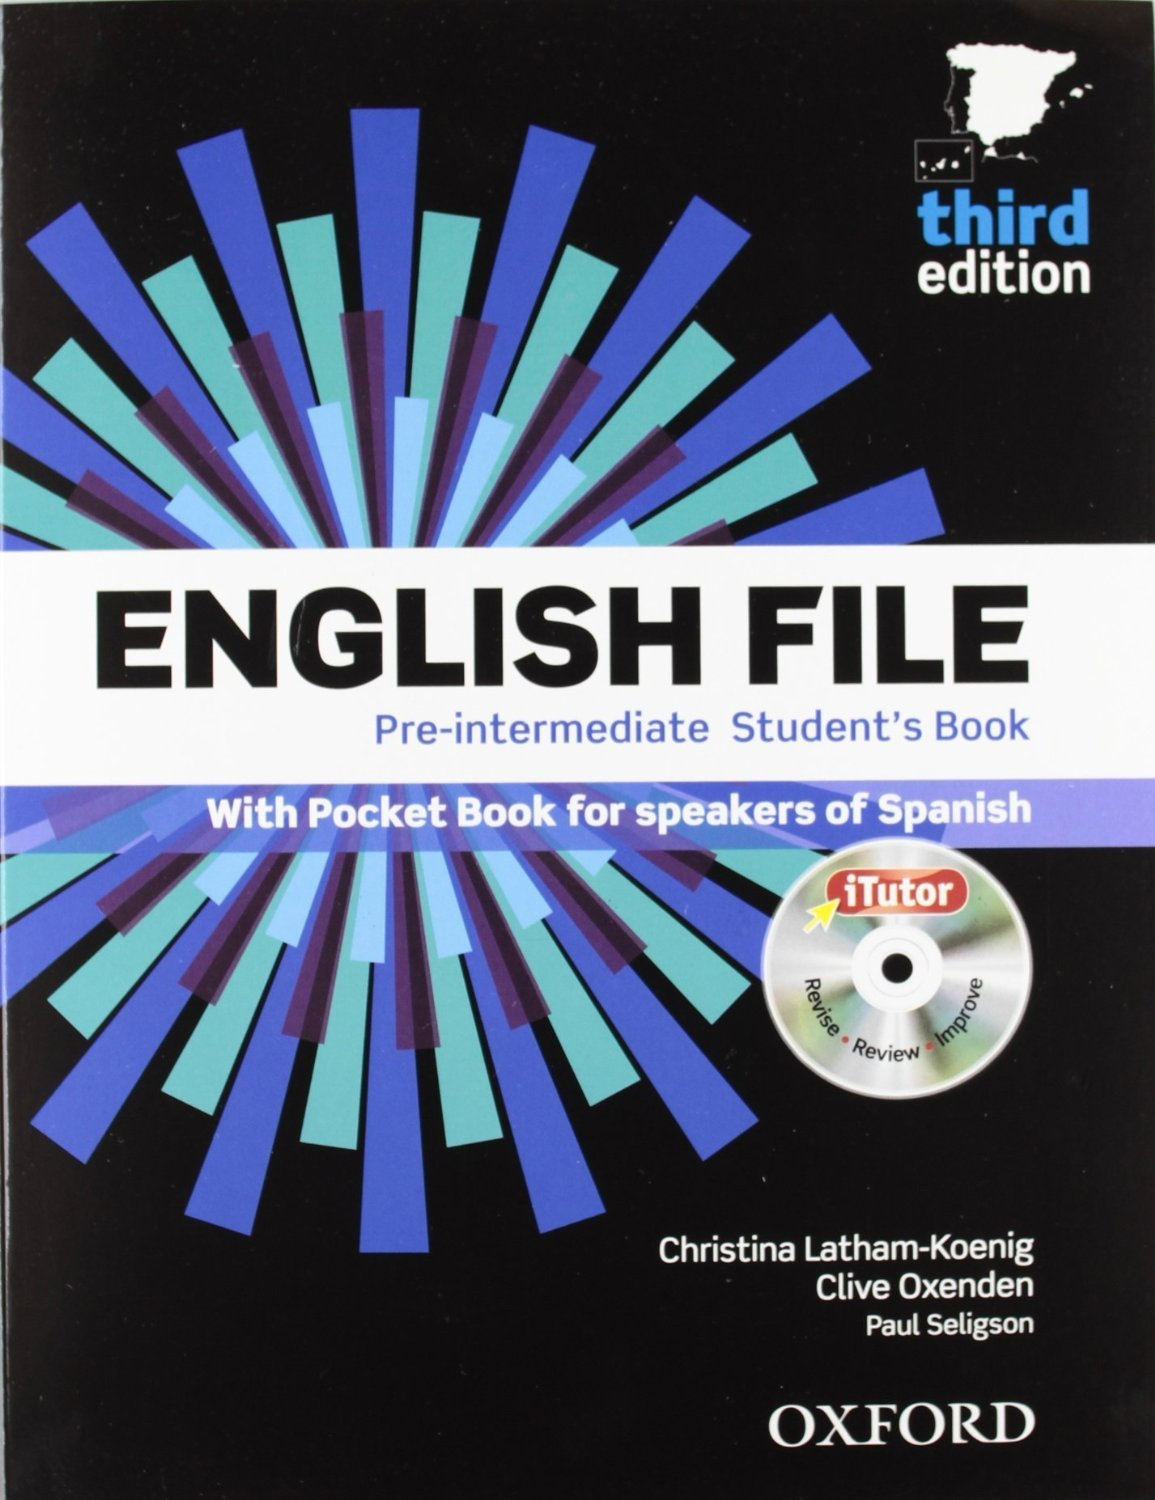 English file pre-intermediate Student´s Book + Printed Workbook with Key + Online Skills Practice, 3 Edition English File Third Edition - 9780194598934: Amazon.es: Oxenden, Clive, Latham-Koenig, Christina, Seligson, Paul: Libros en idiomas